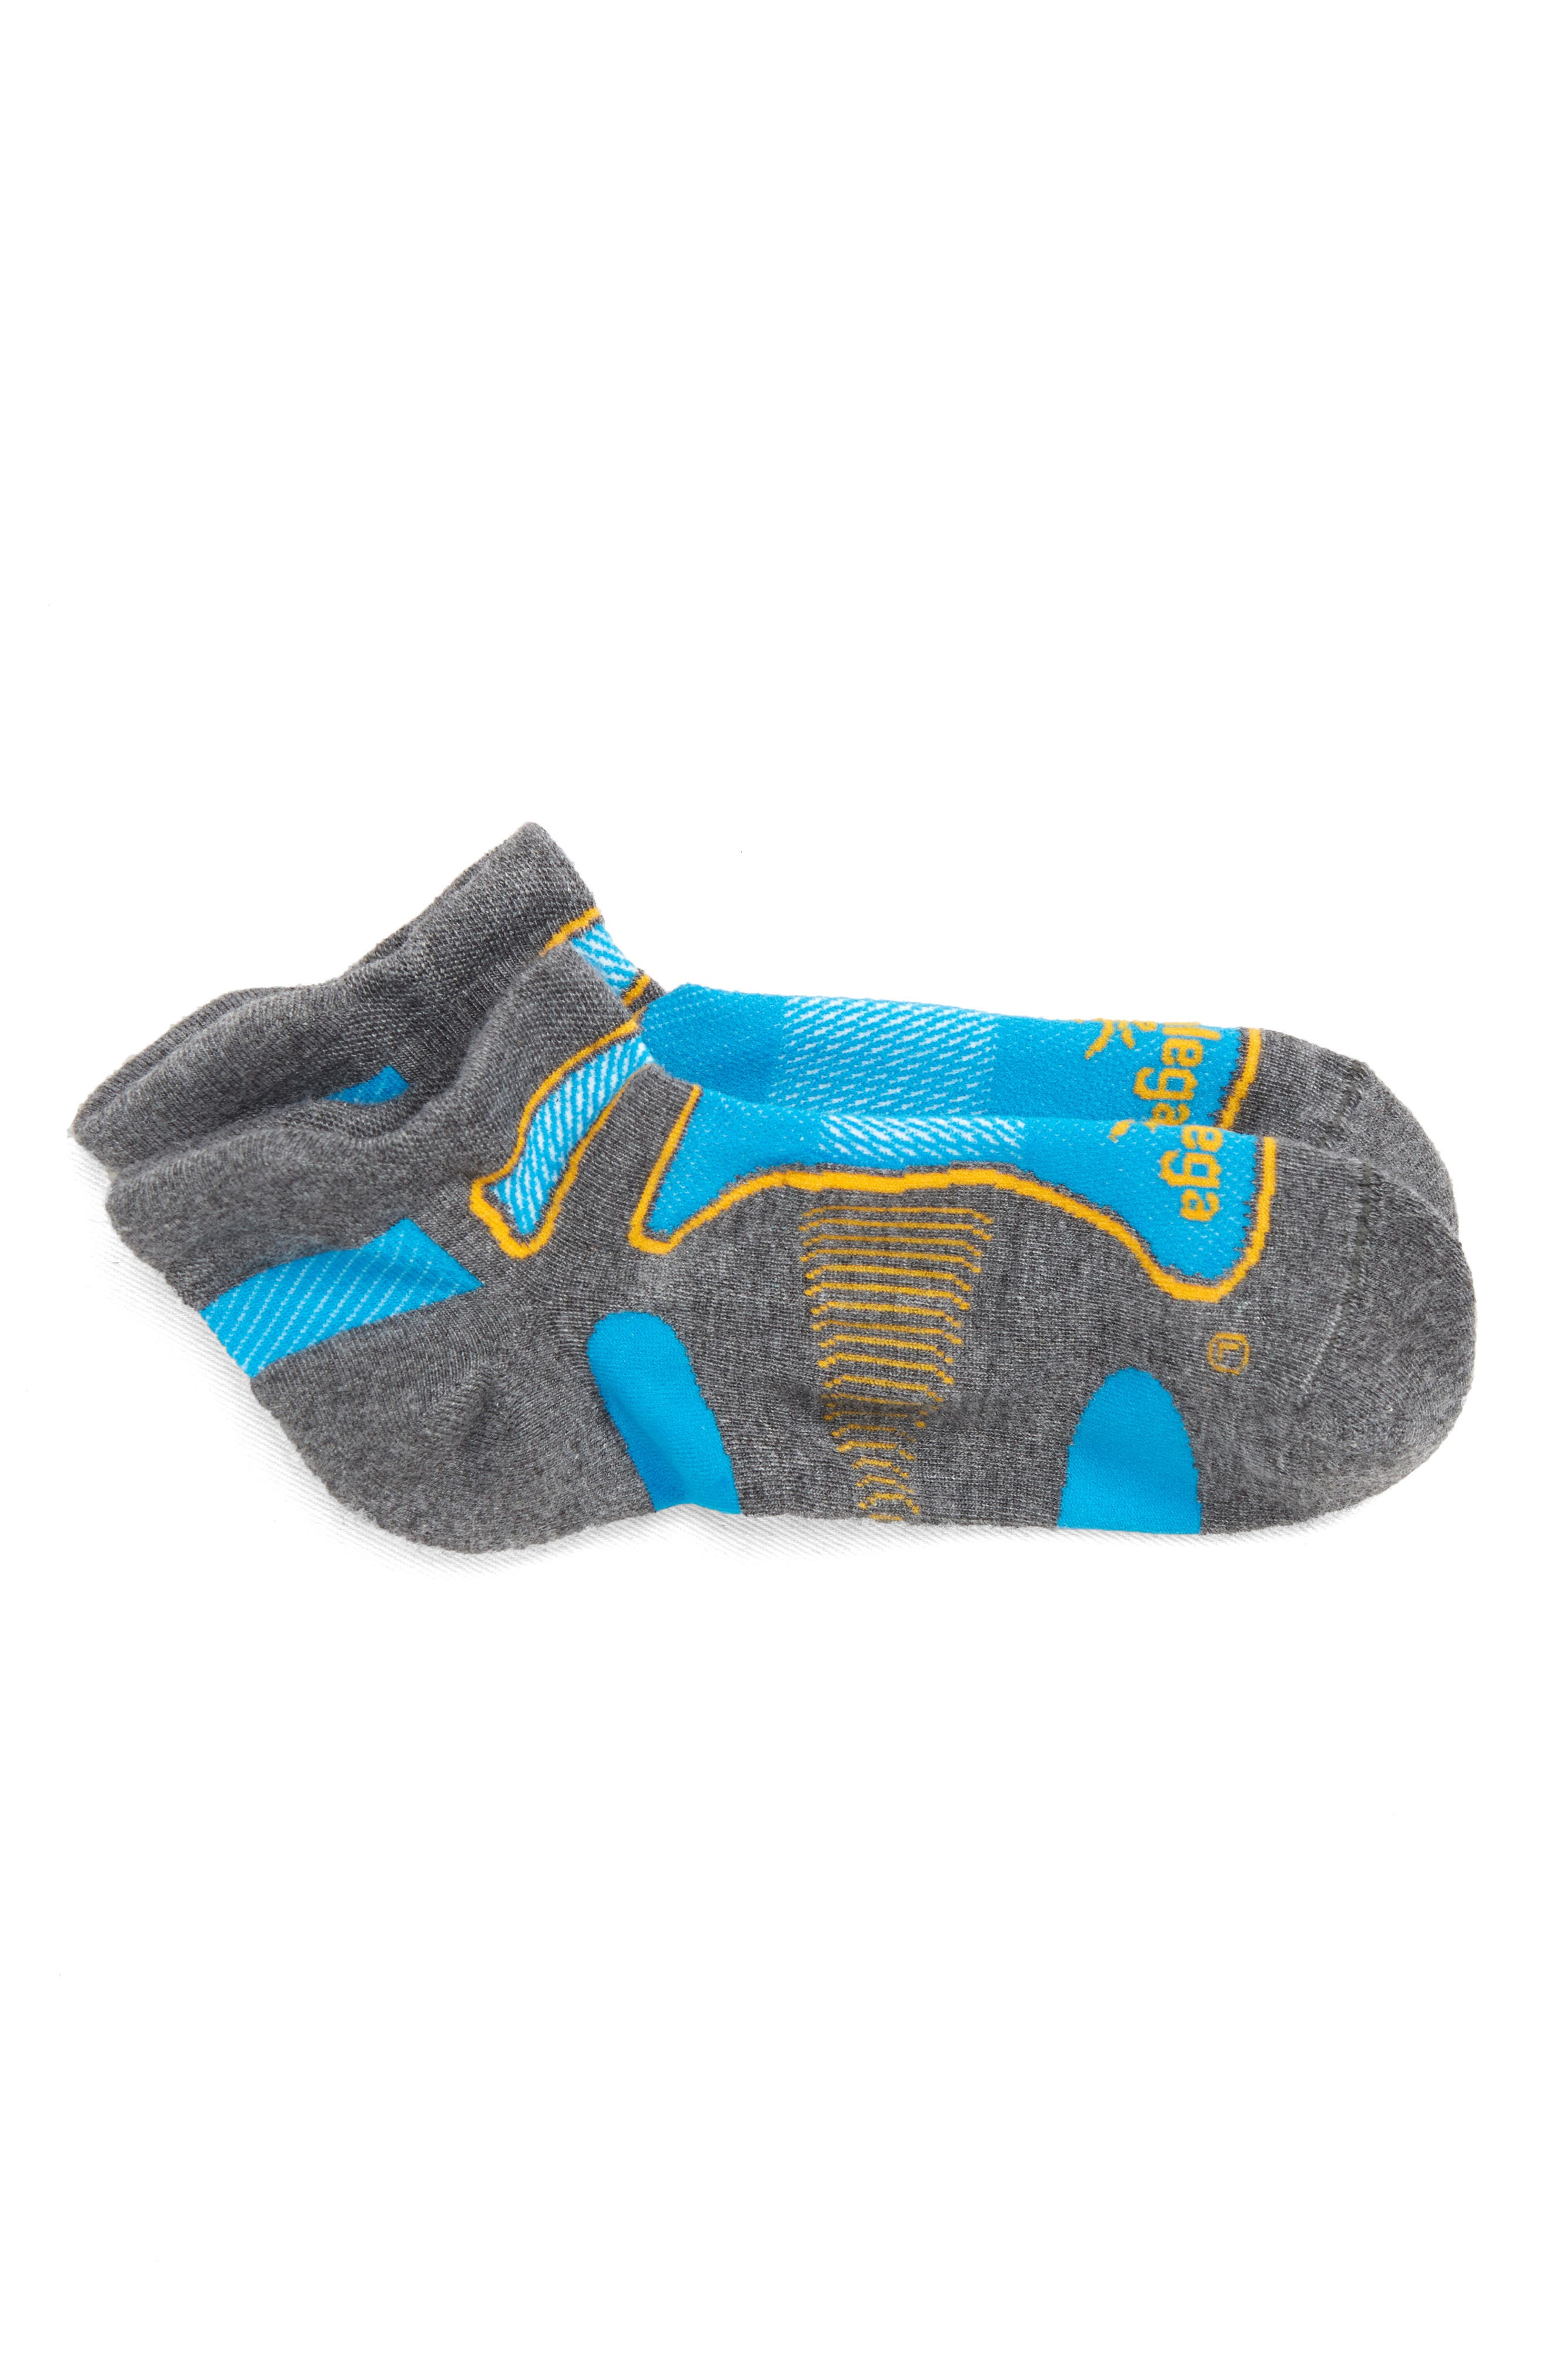 Silver Socks,                         Main,                         color, Bright Turquoise/ Ink